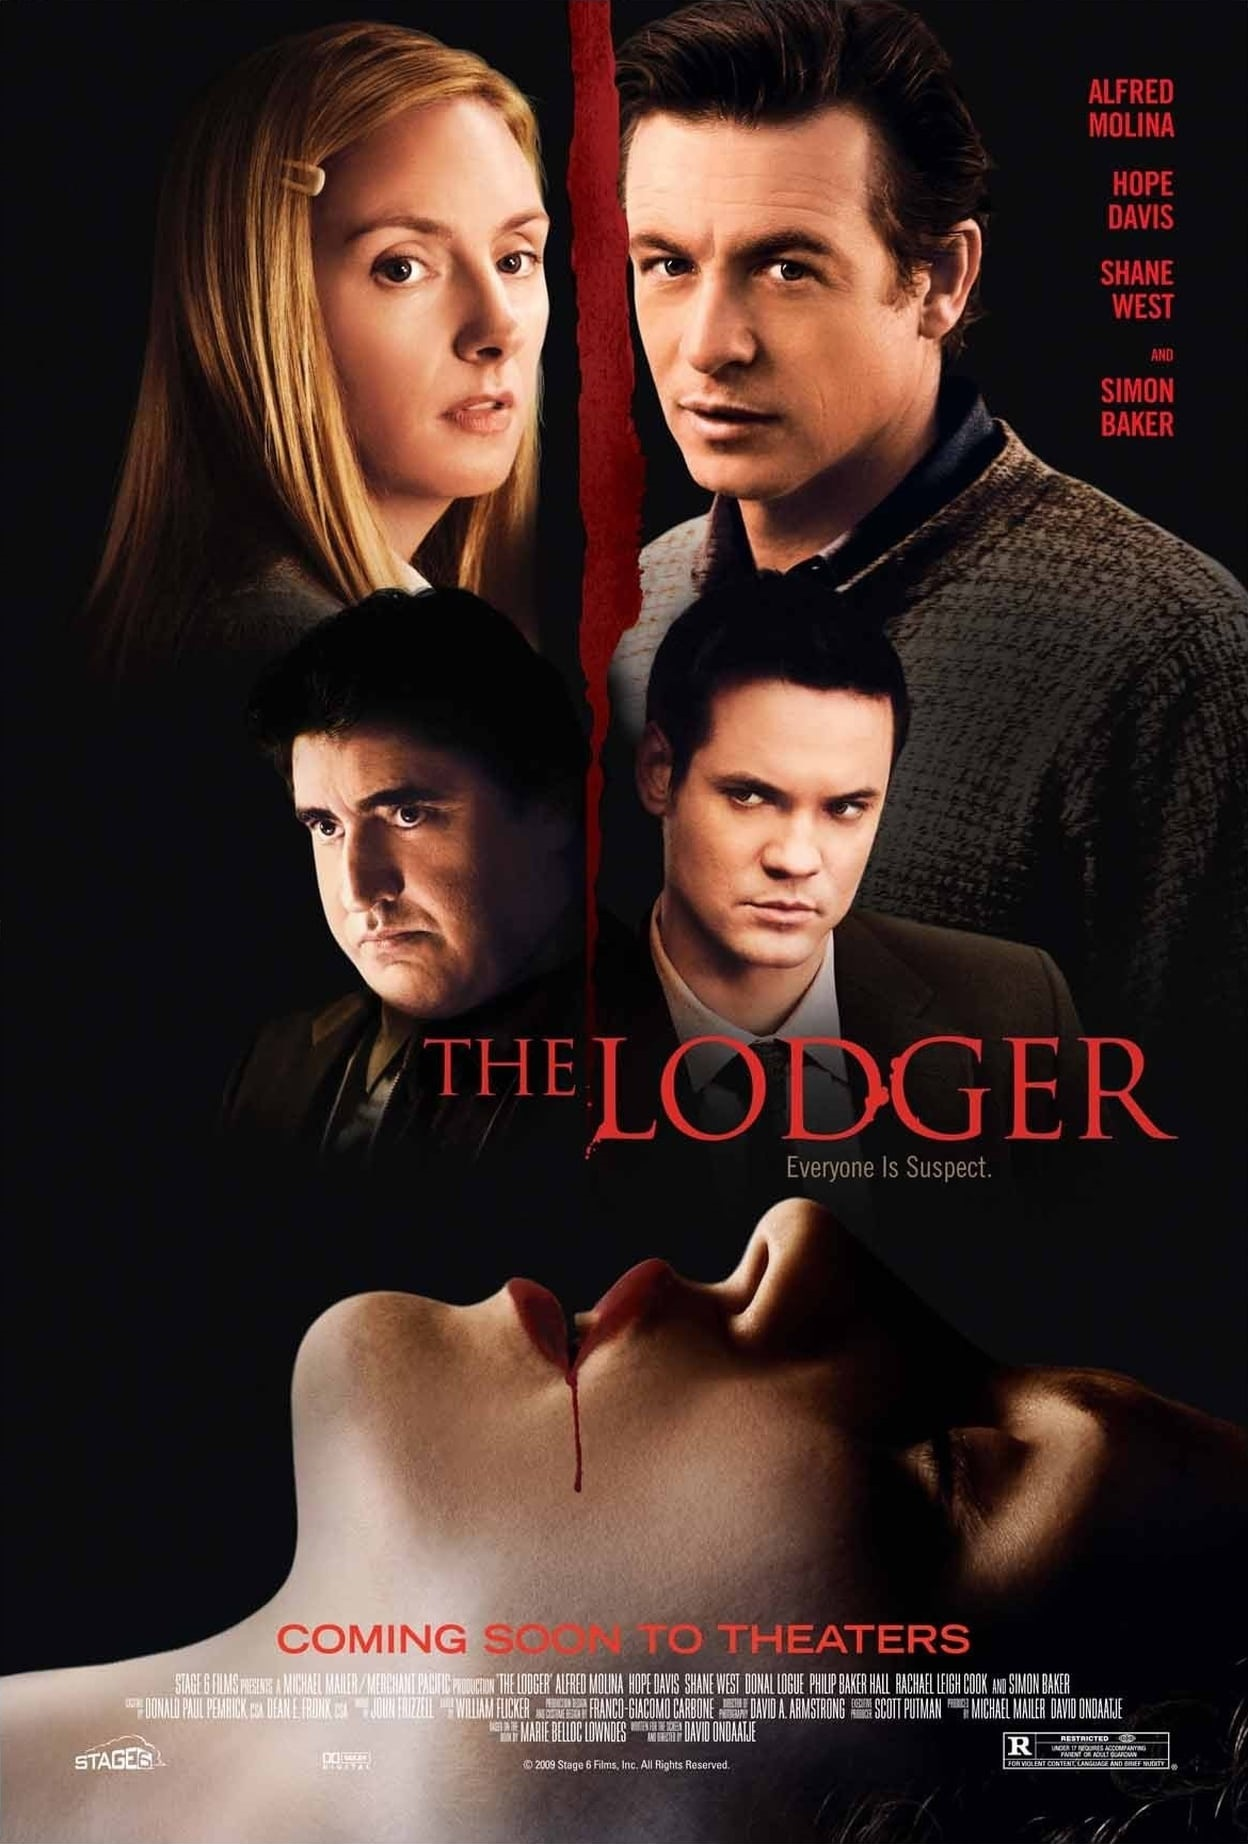 The Lodger (2009) US poster